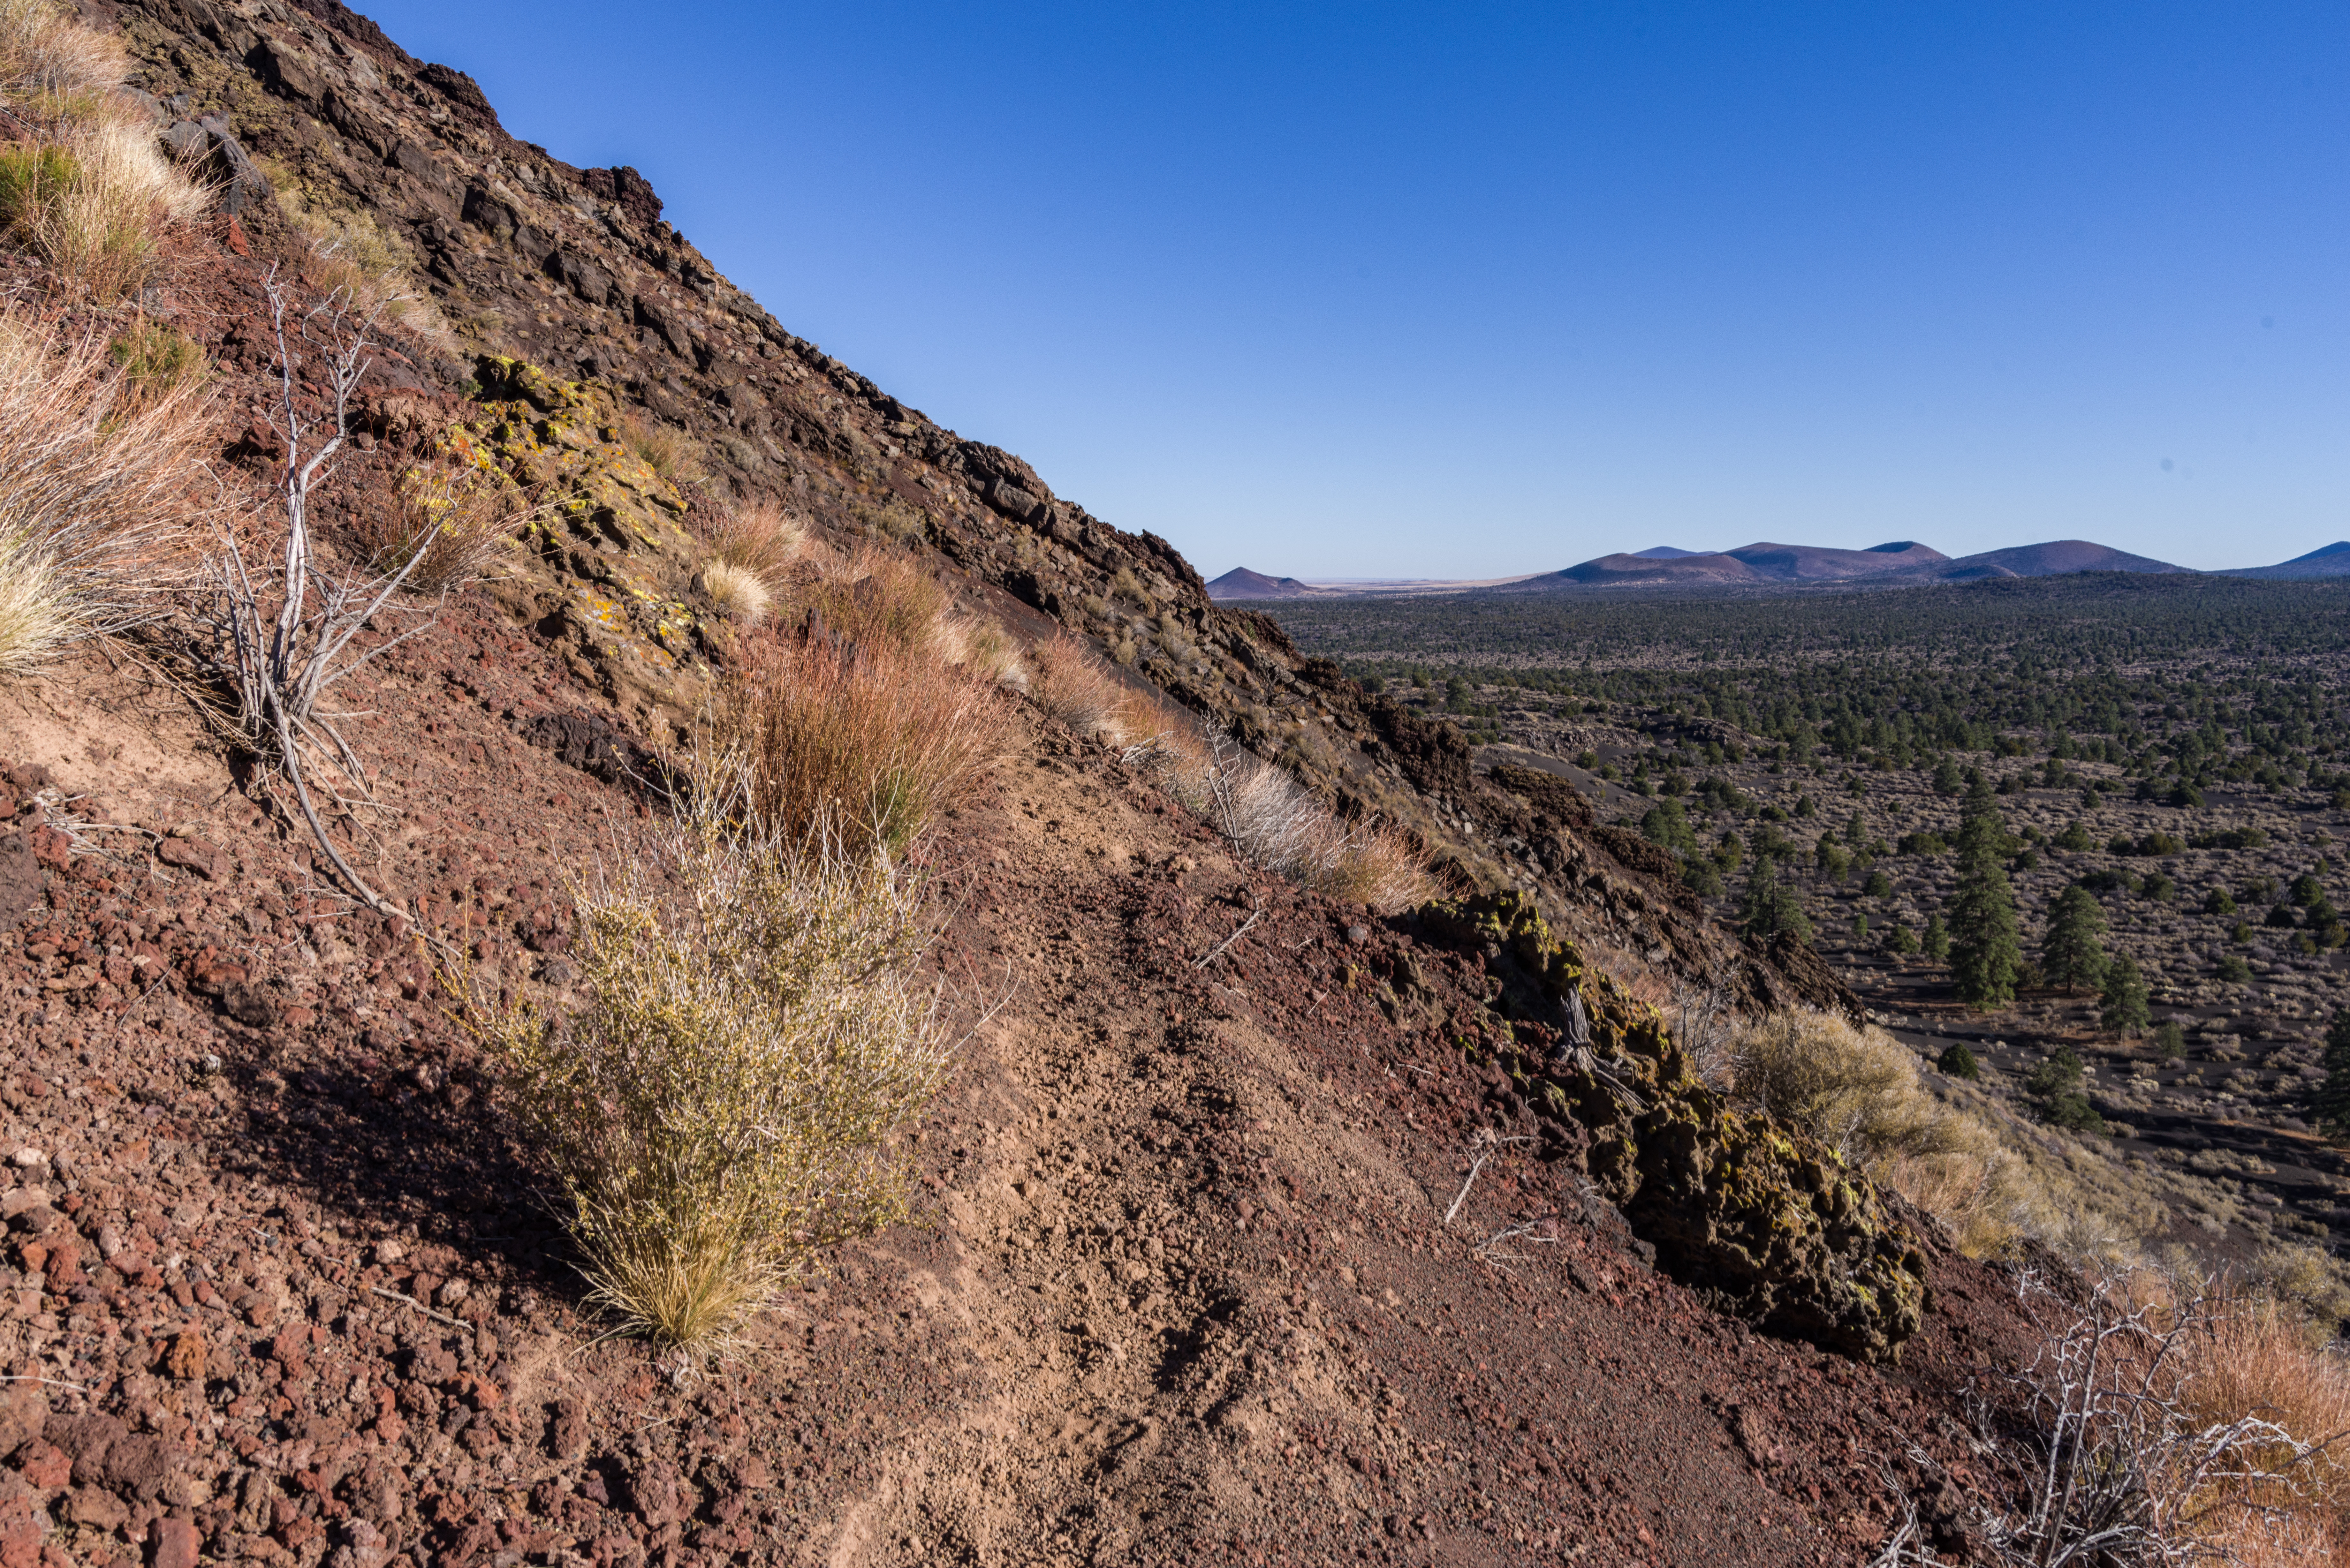 Strawberry Crater Trail, Sky, Pentax K-1, Outdoors, Mountainside, HQ Photo